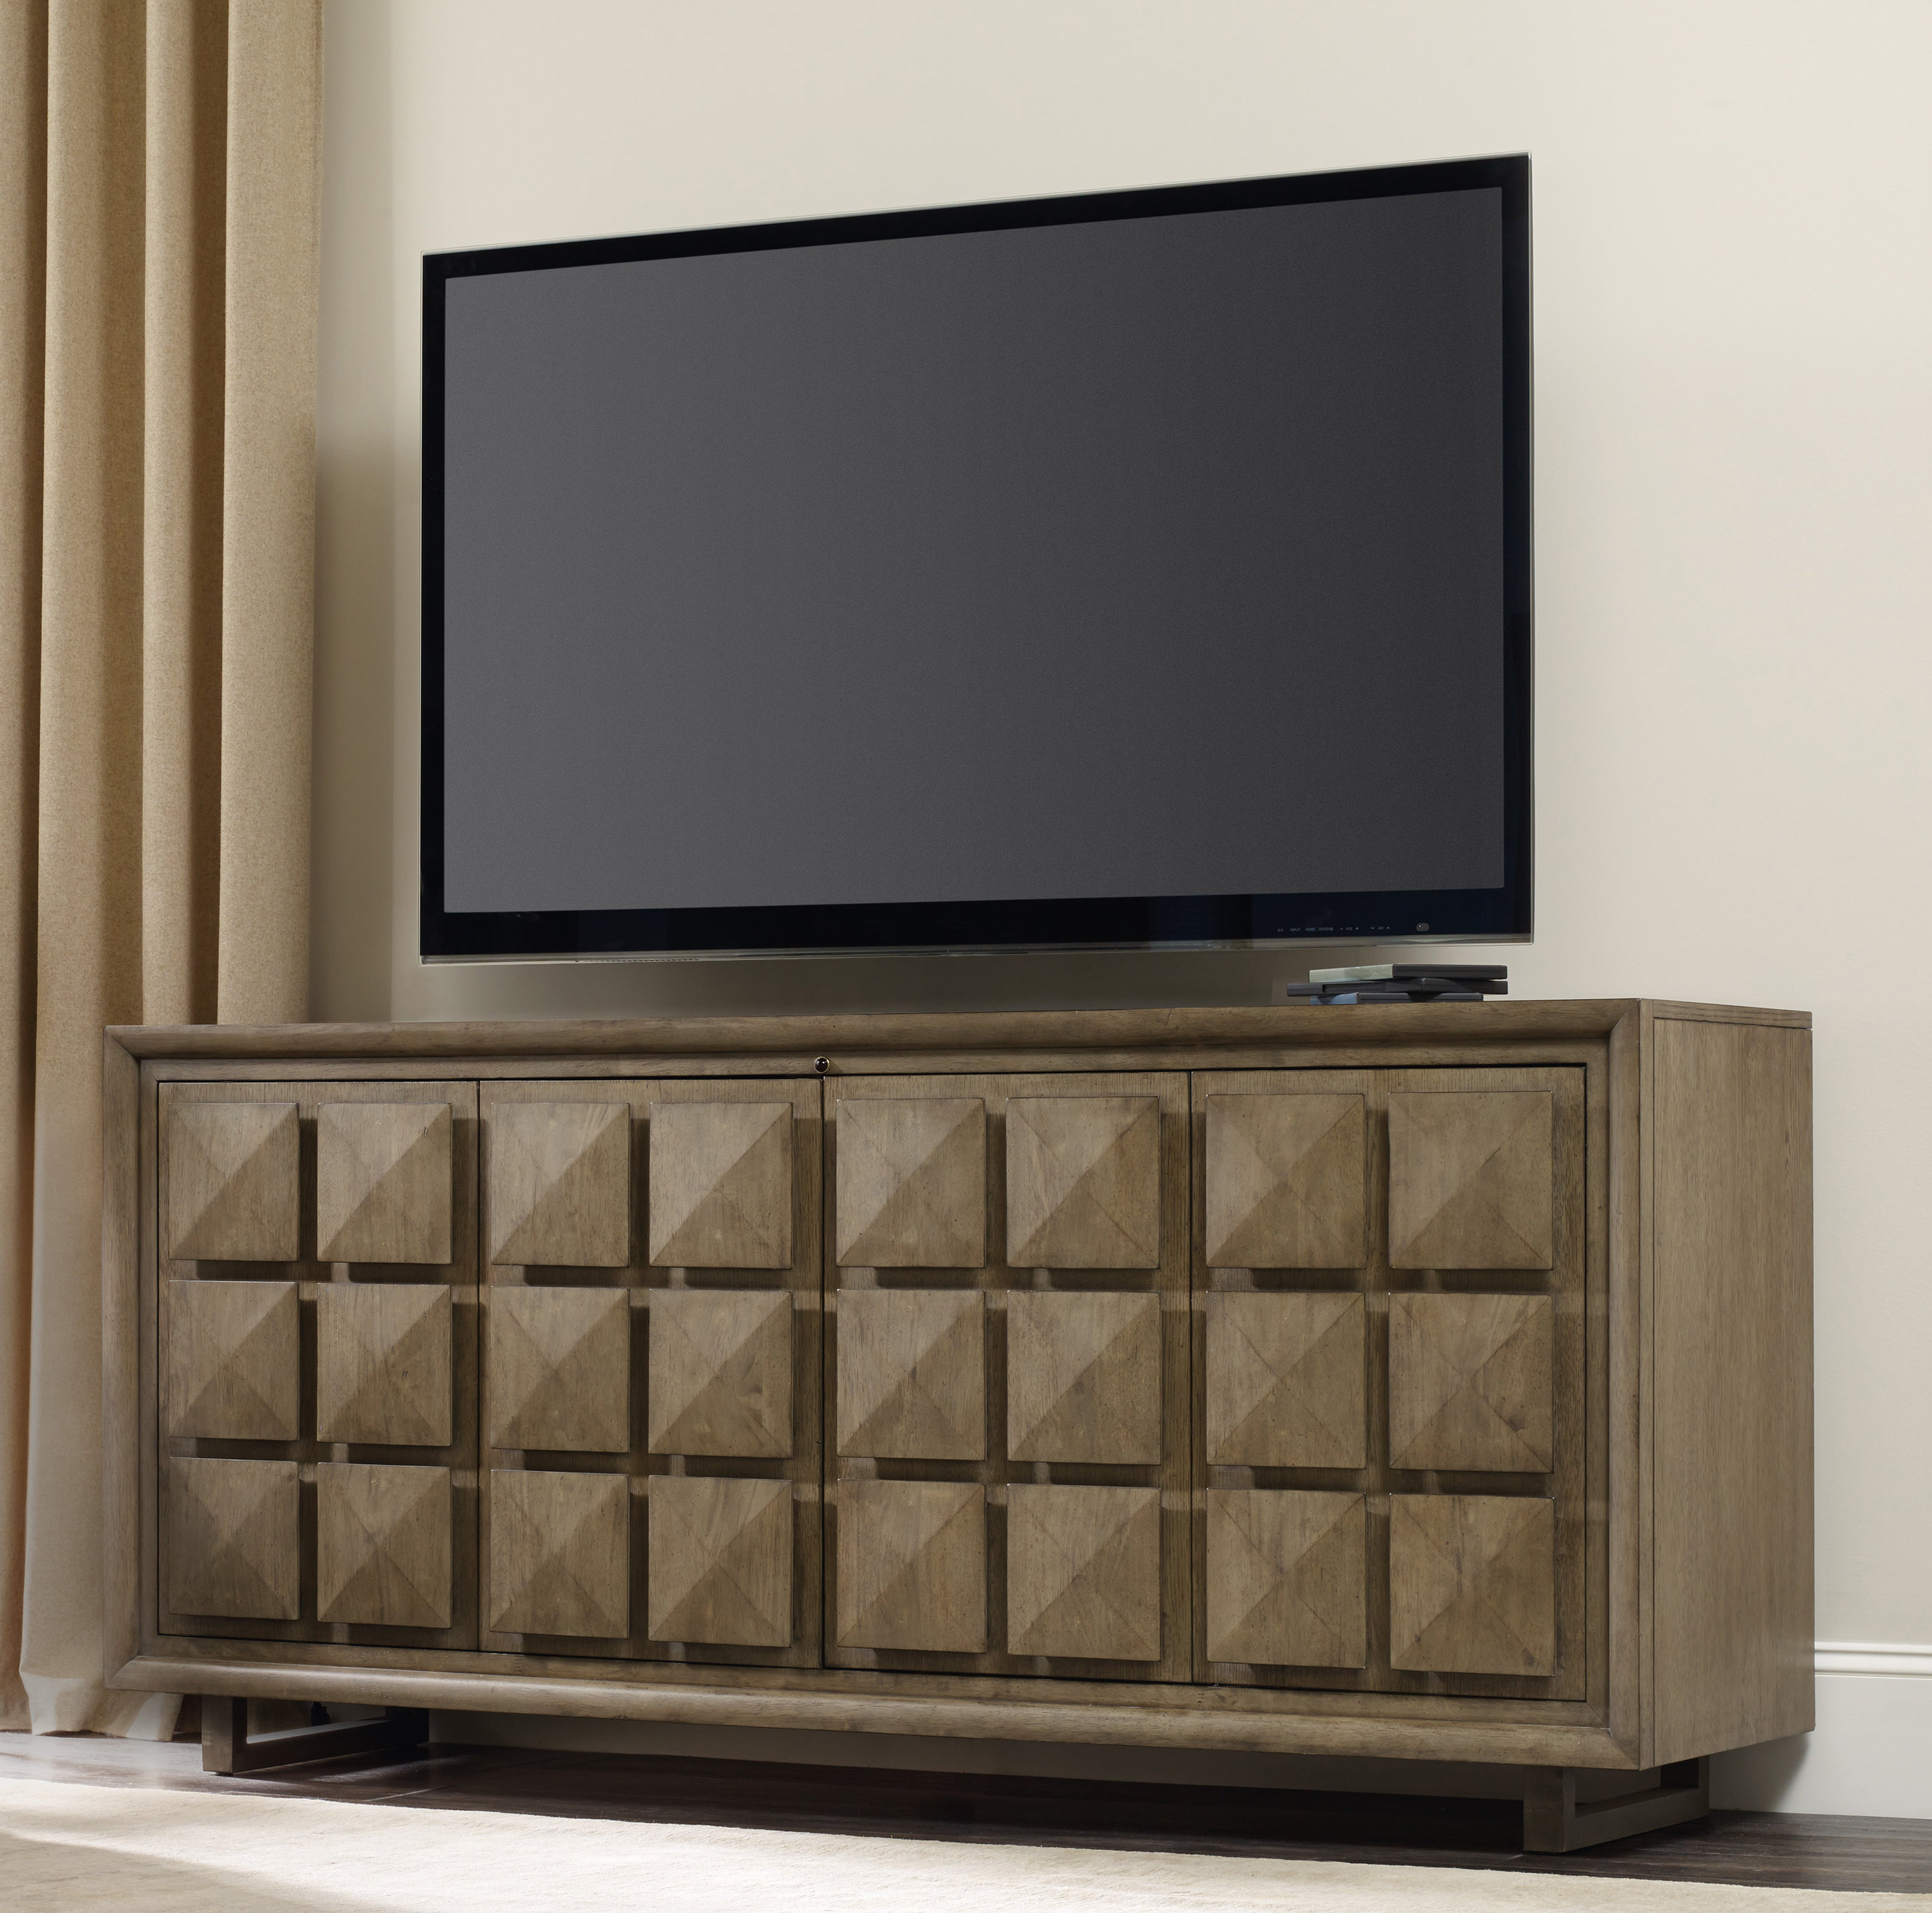 70 Inch Tv Stands | Joss & Main With Regard To Bale Rustic Grey 82 Inch Tv Stands (View 14 of 20)